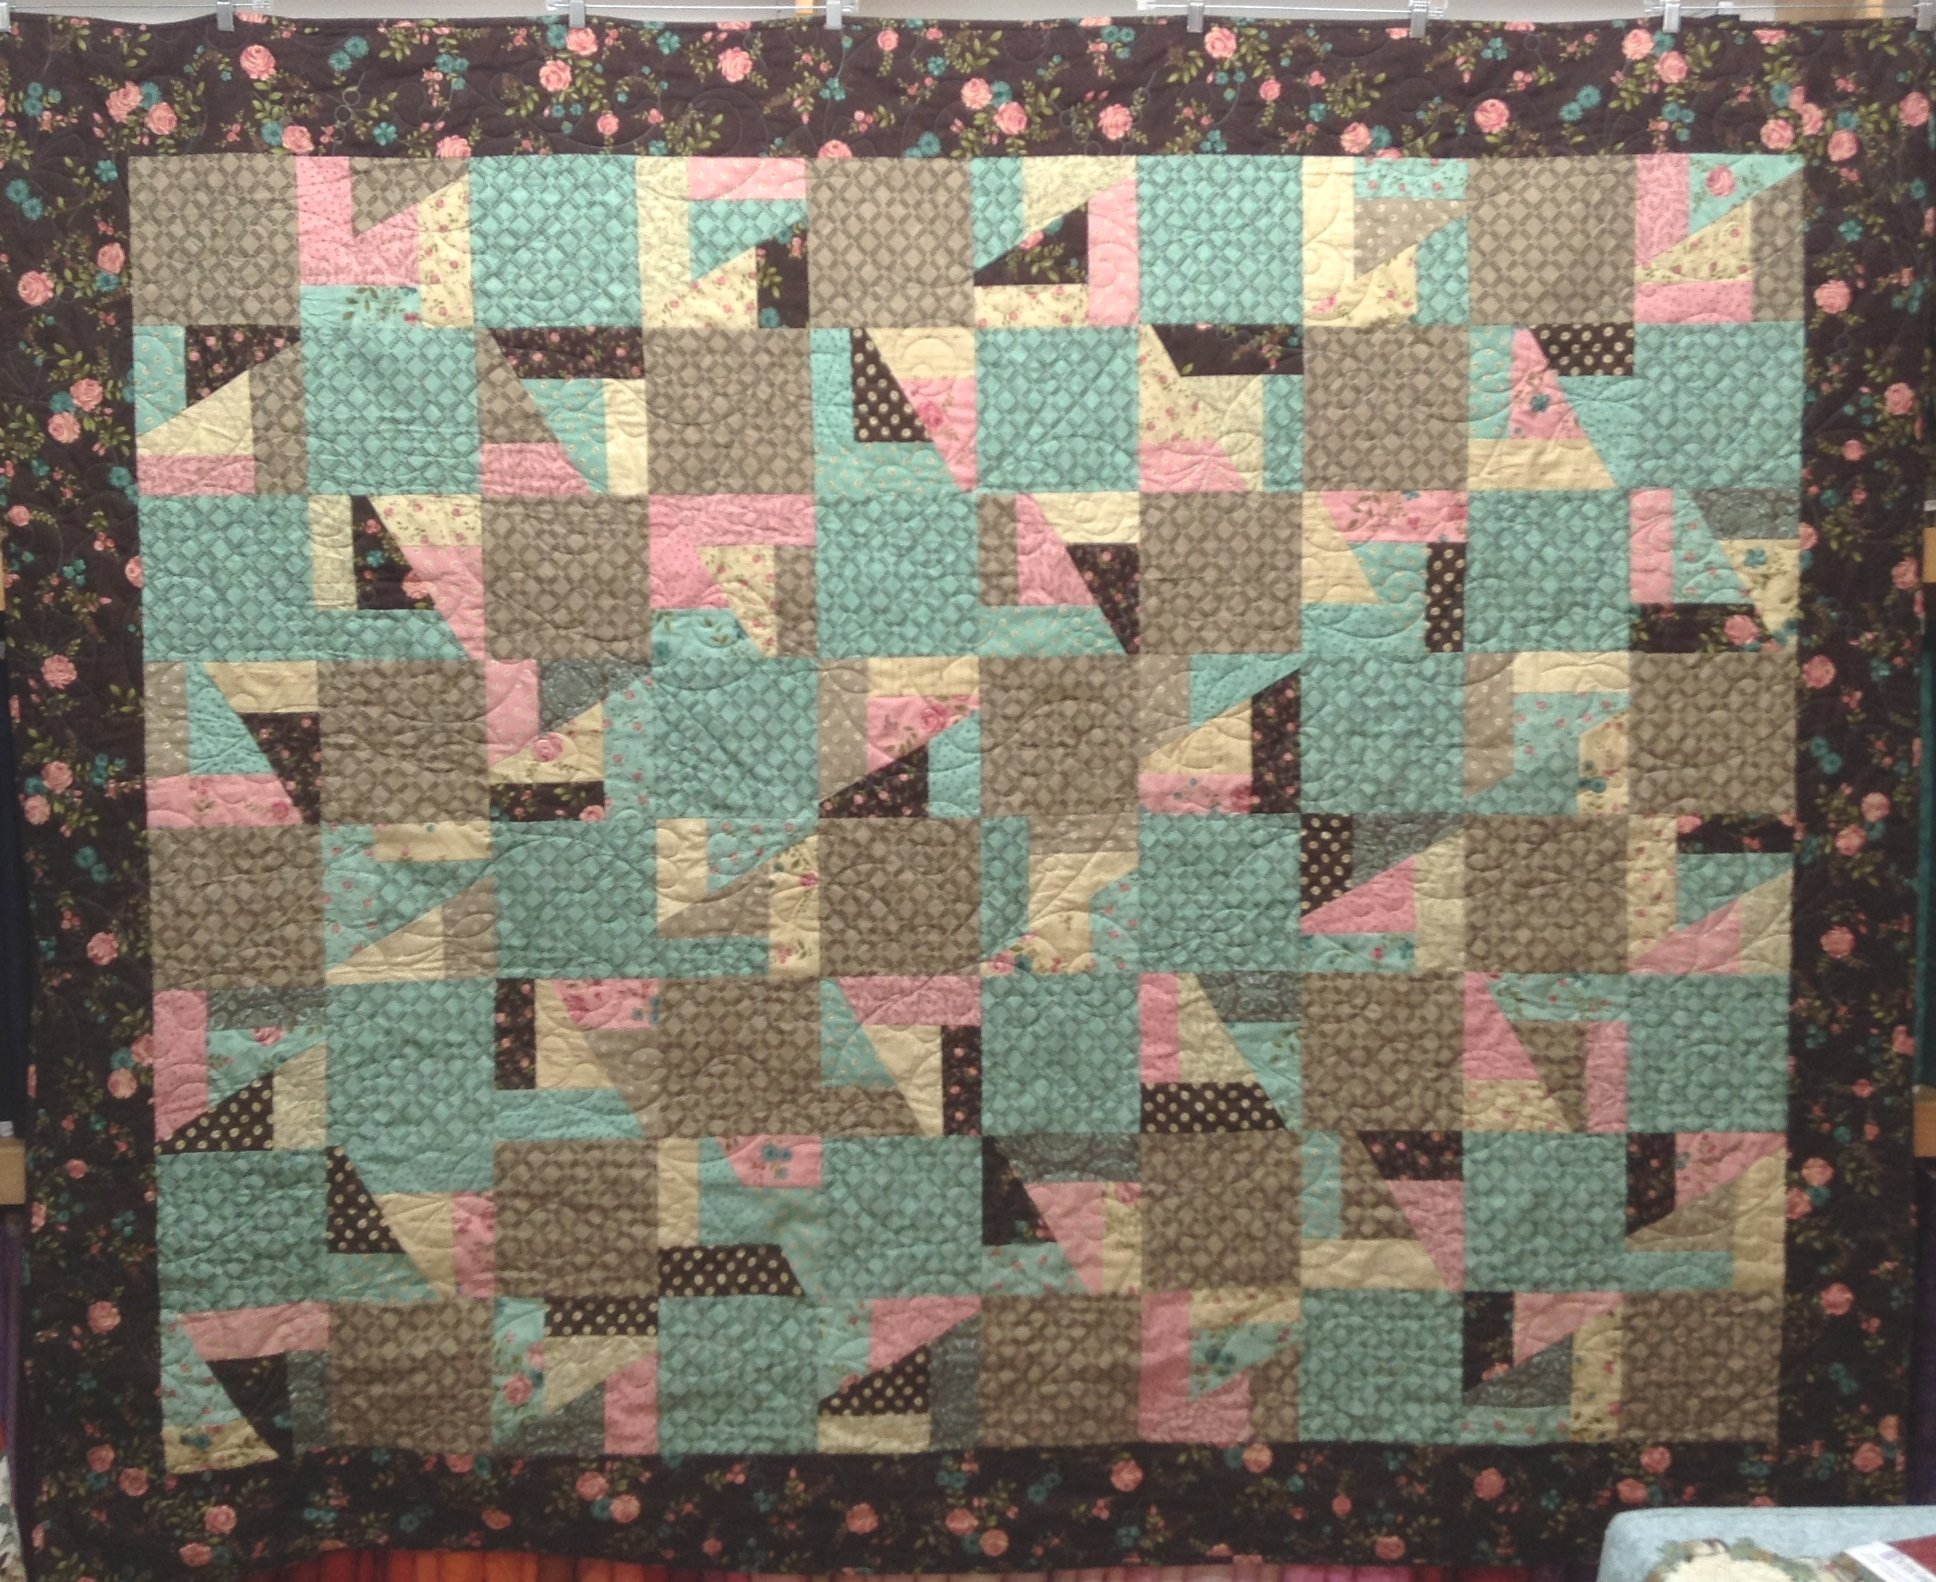 Quilt for Sale: Scrap Crazy Quilt - Brown / Pink / Teal floral - 72 x 88